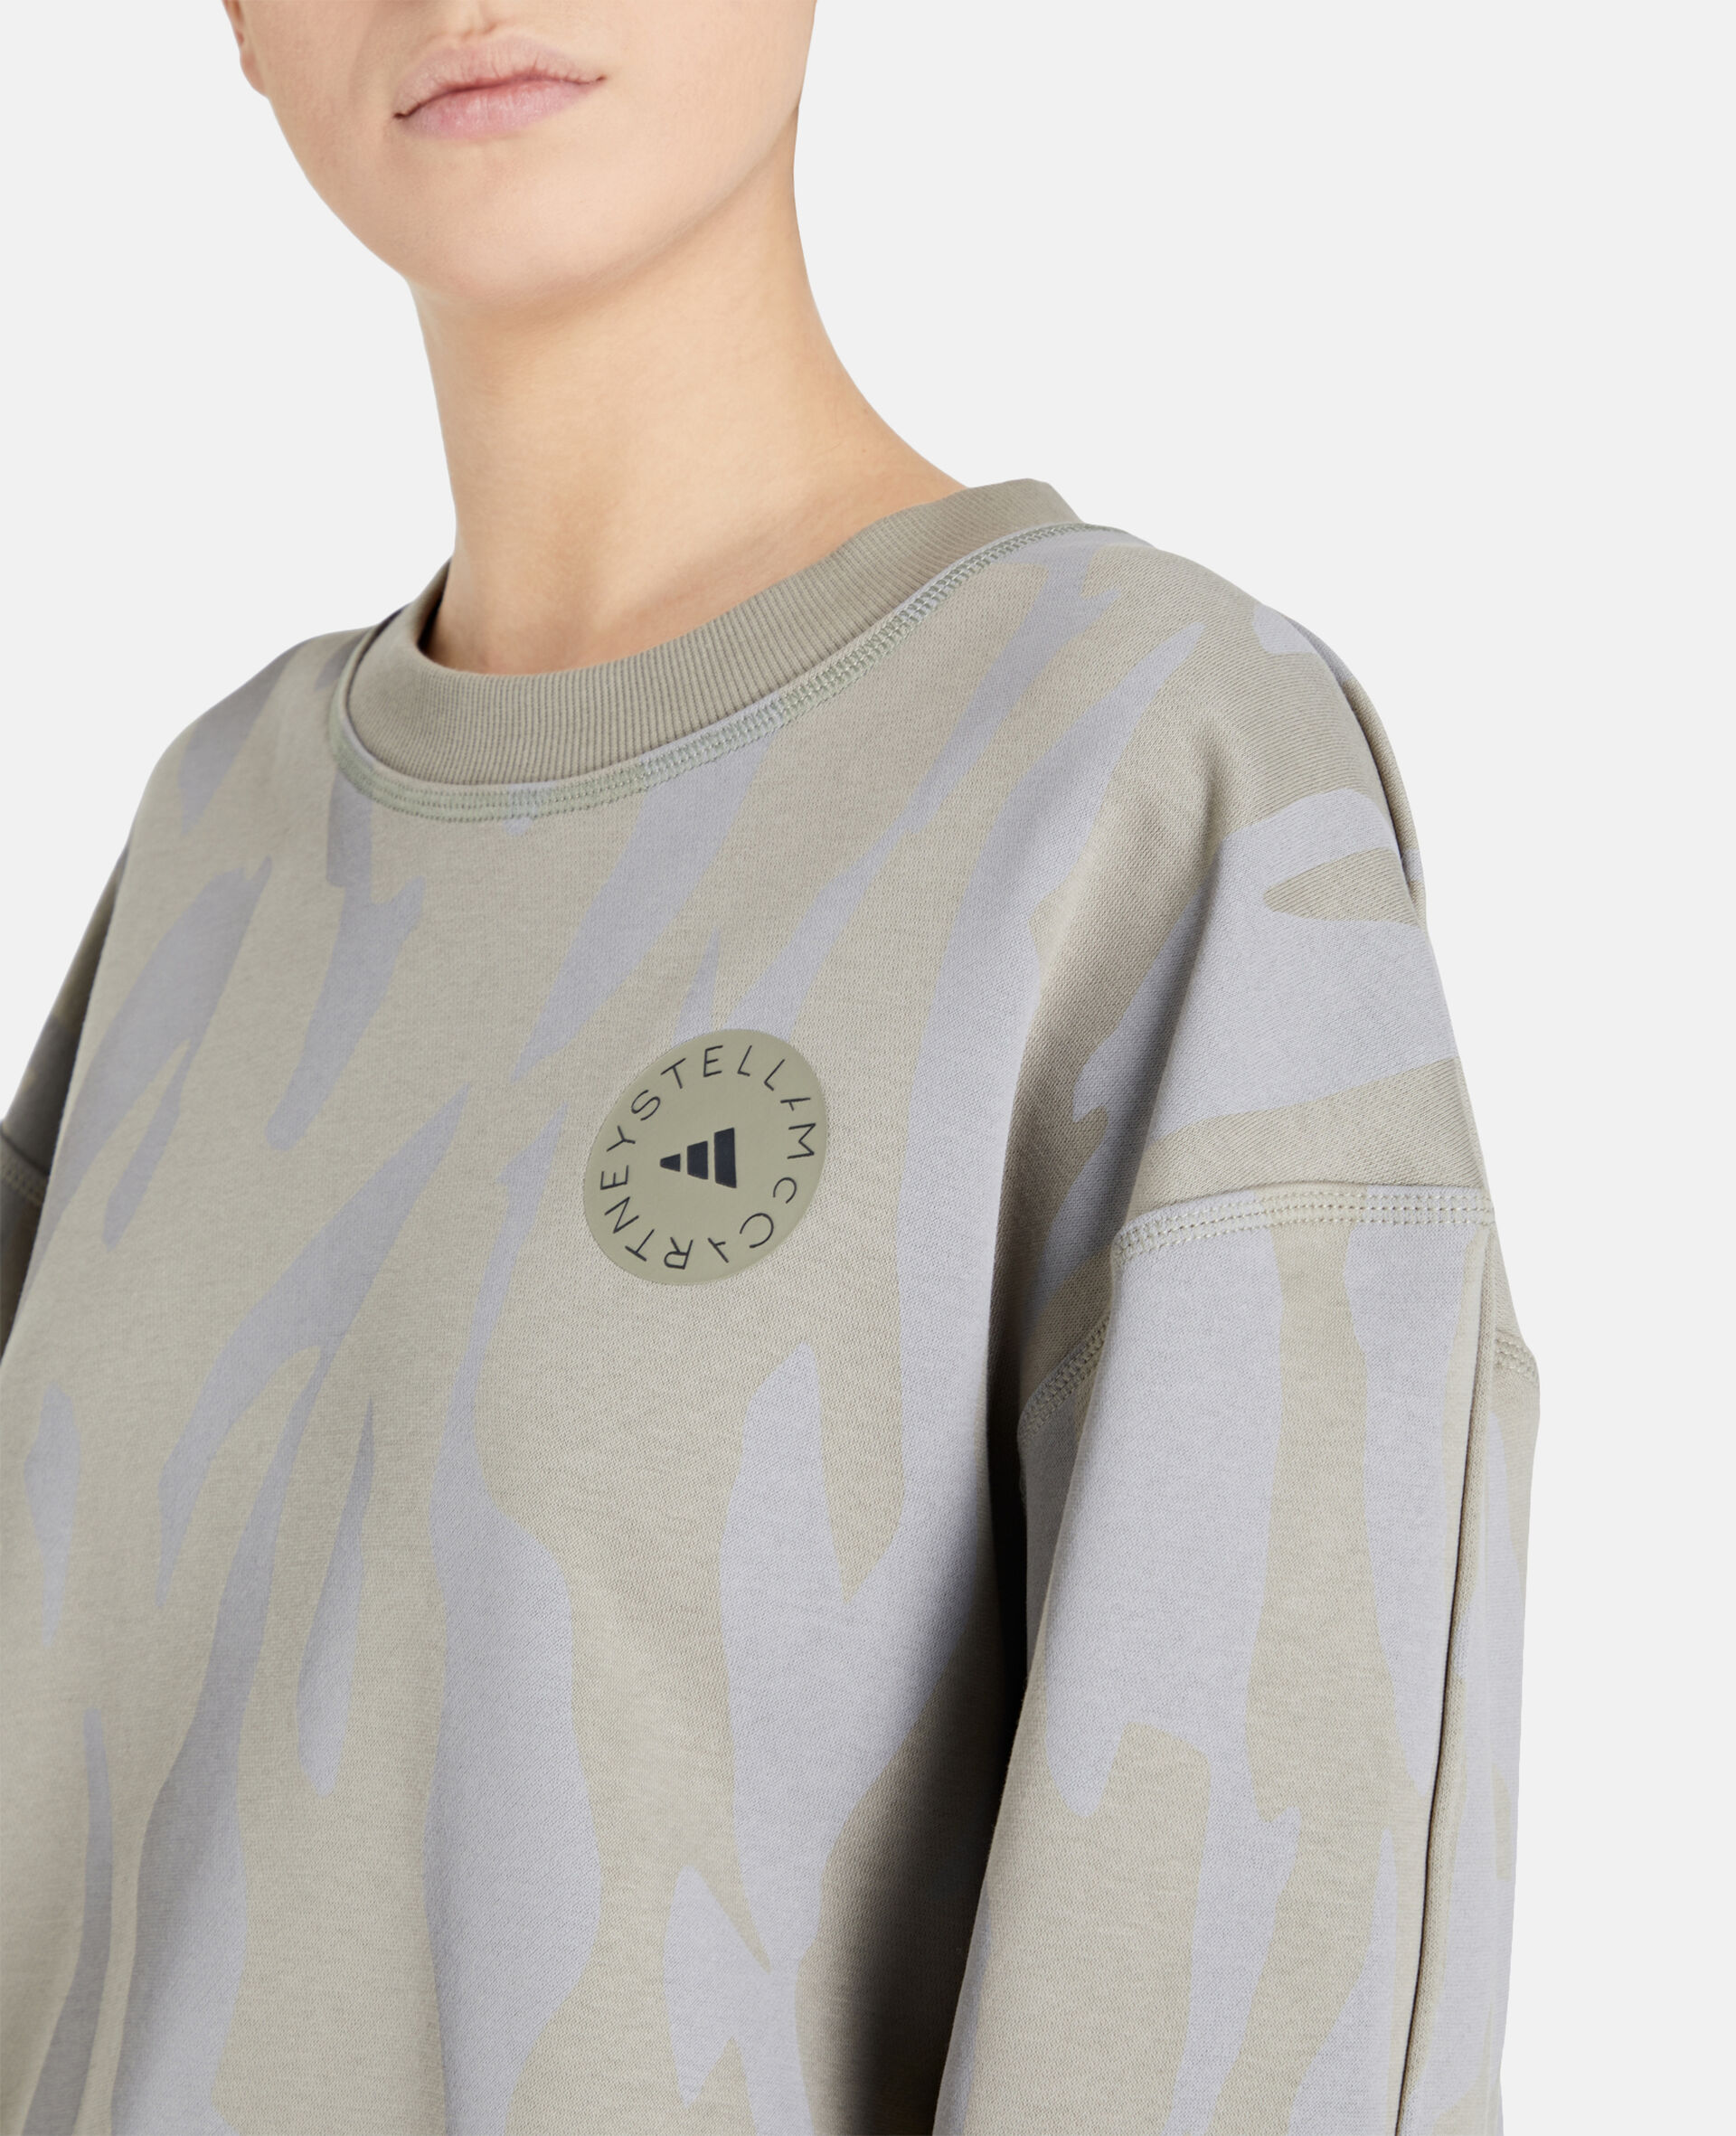 Gray Training Sweatshirt -Grey-large image number 3